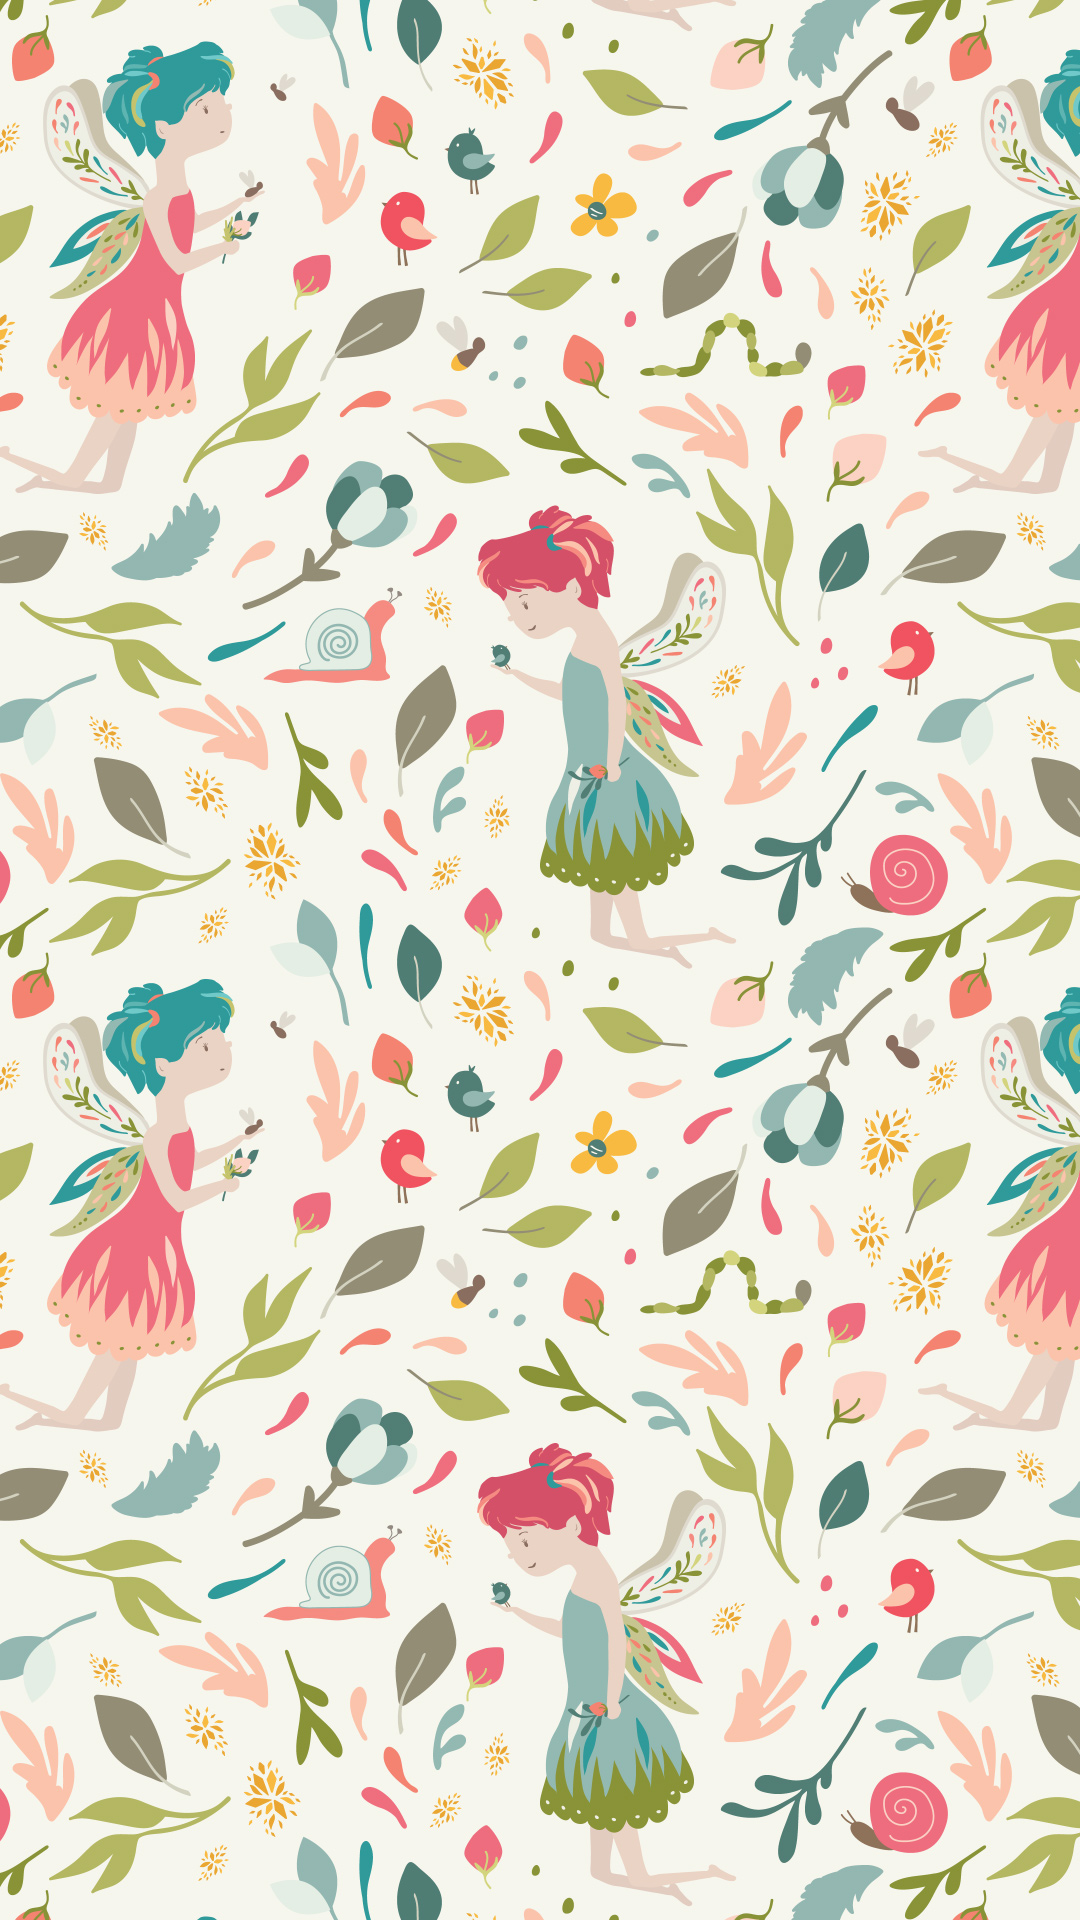 wild flora - A fairy and flora wonderland pattern collection